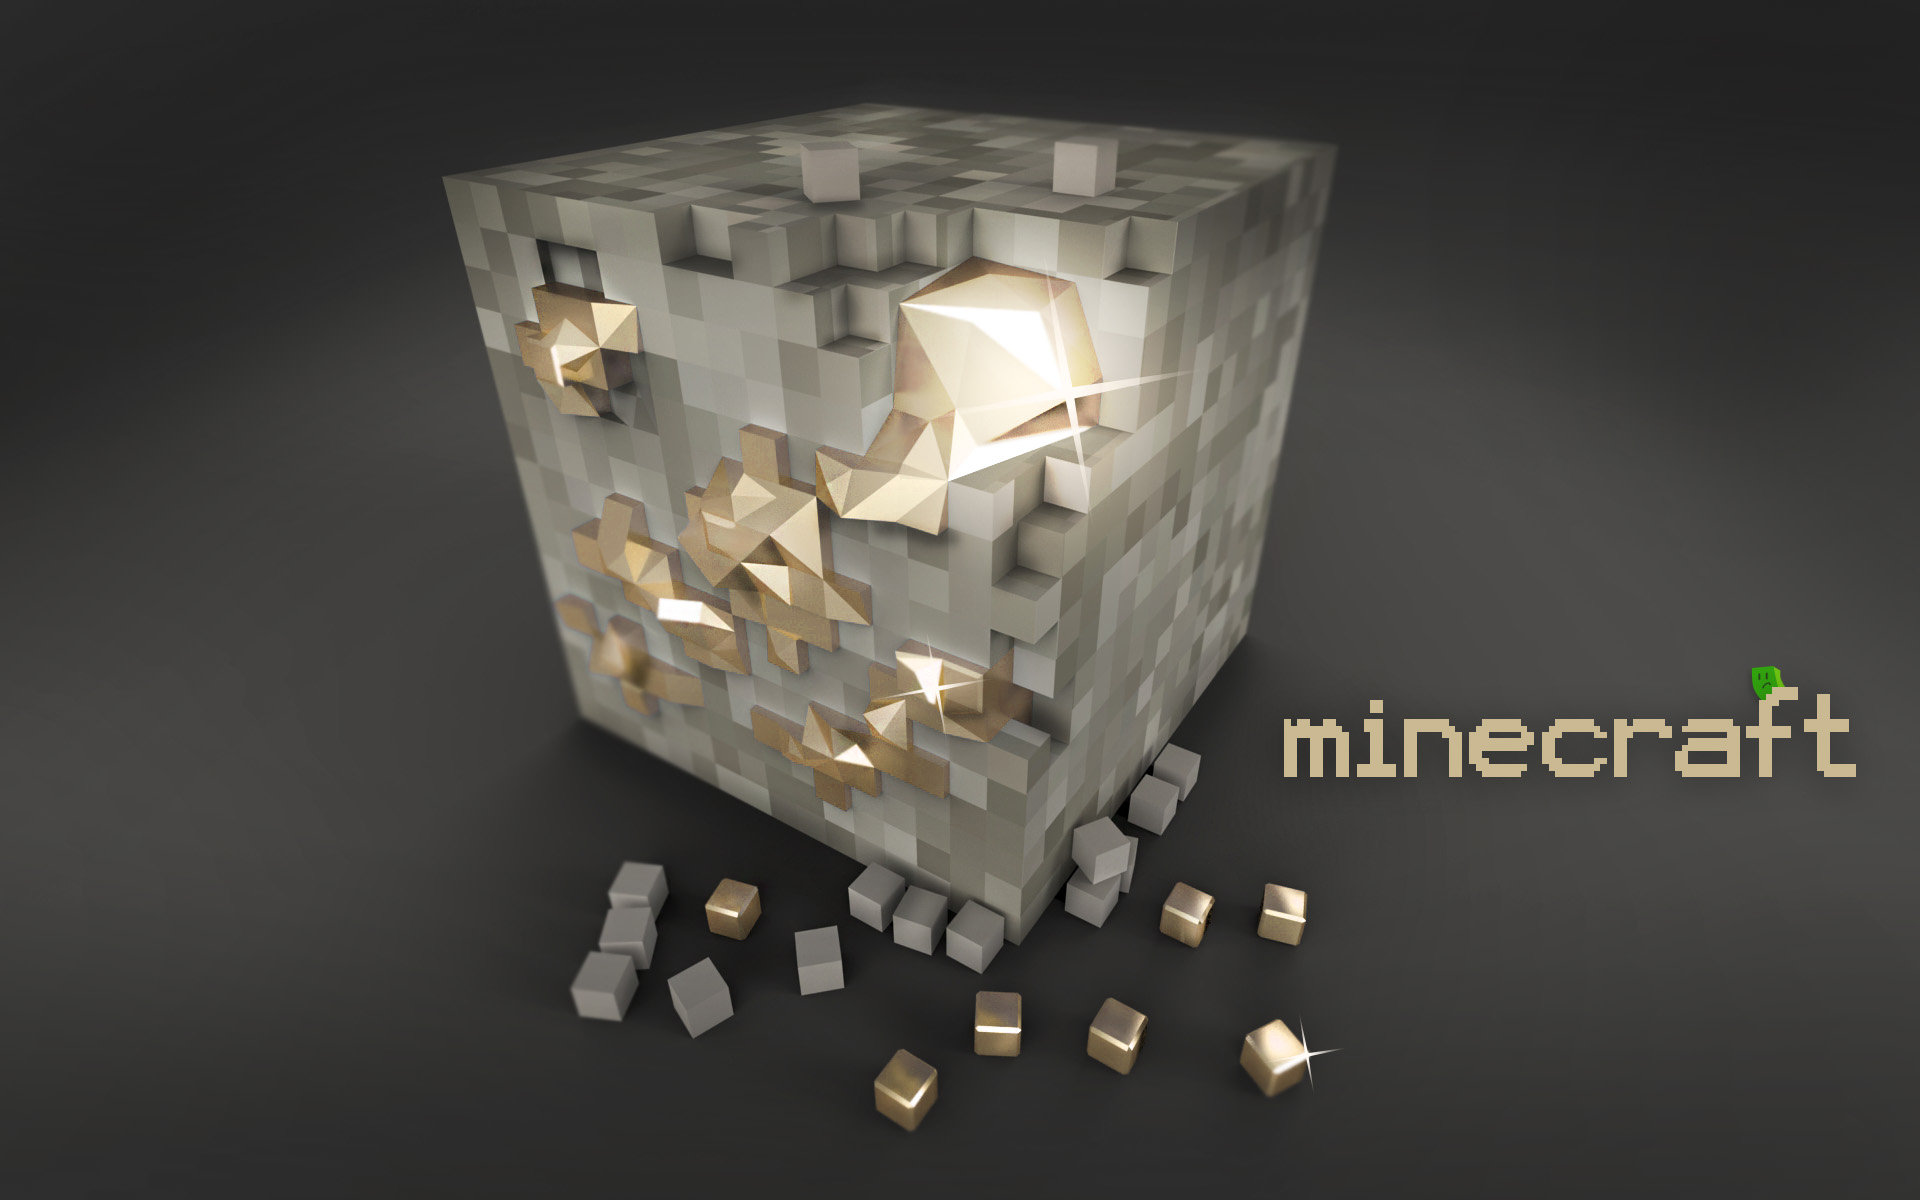 For-Minecraft-on-the-PC-a-GameFAQs-Answers-question-titled-wallpaper-wp3405707